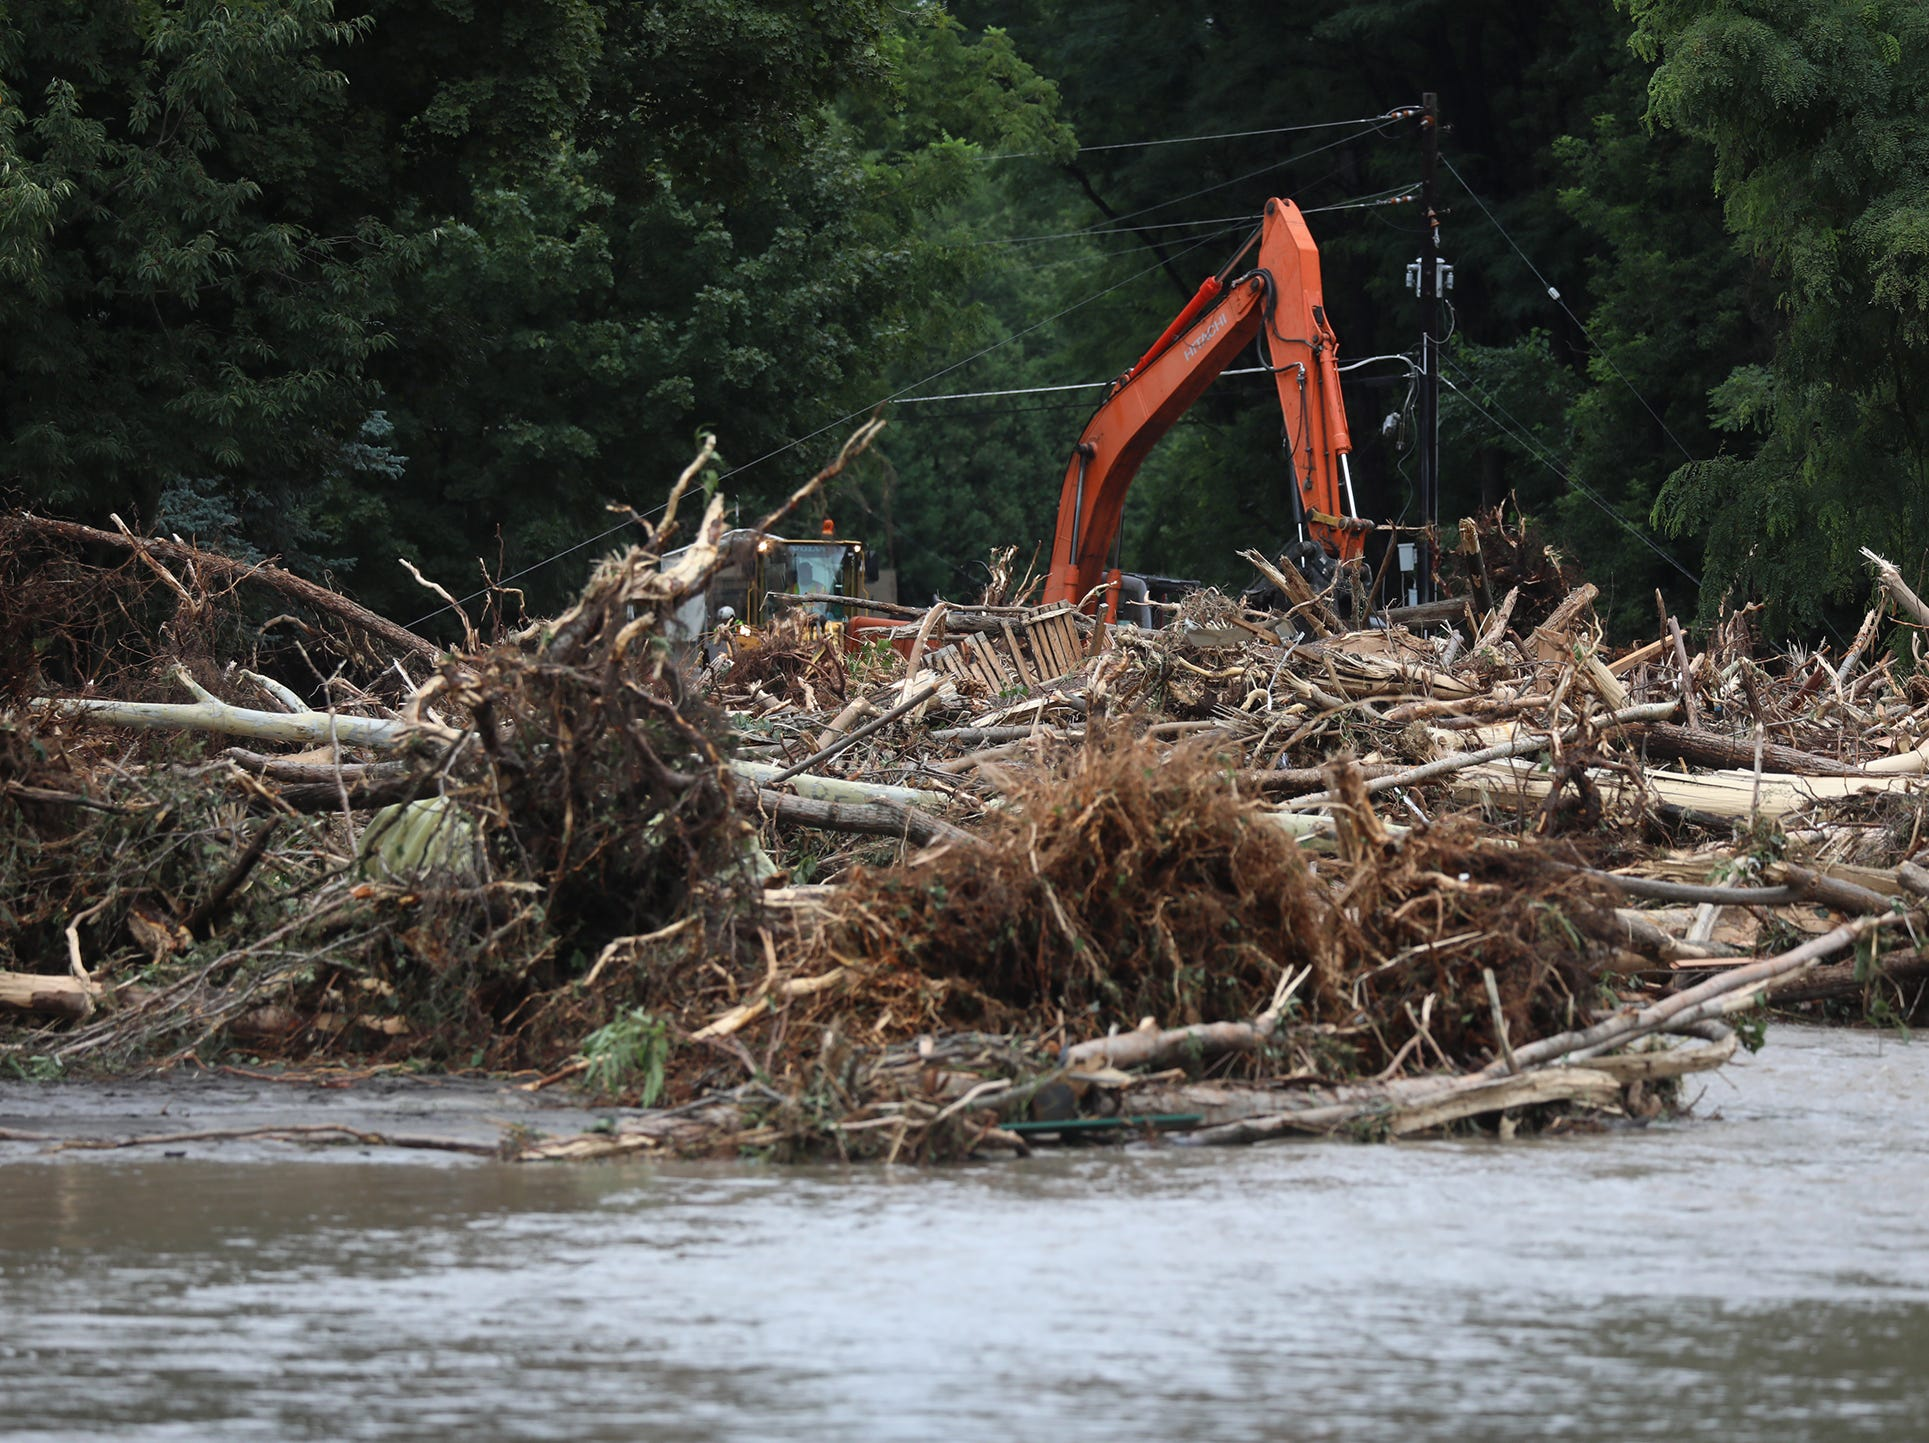 A huge pile of trees obscure a portion of Lower Lake Road after heavy rain caused flooding and washing away at Lodi Point, New York on Tuesday, August 14, 2018.